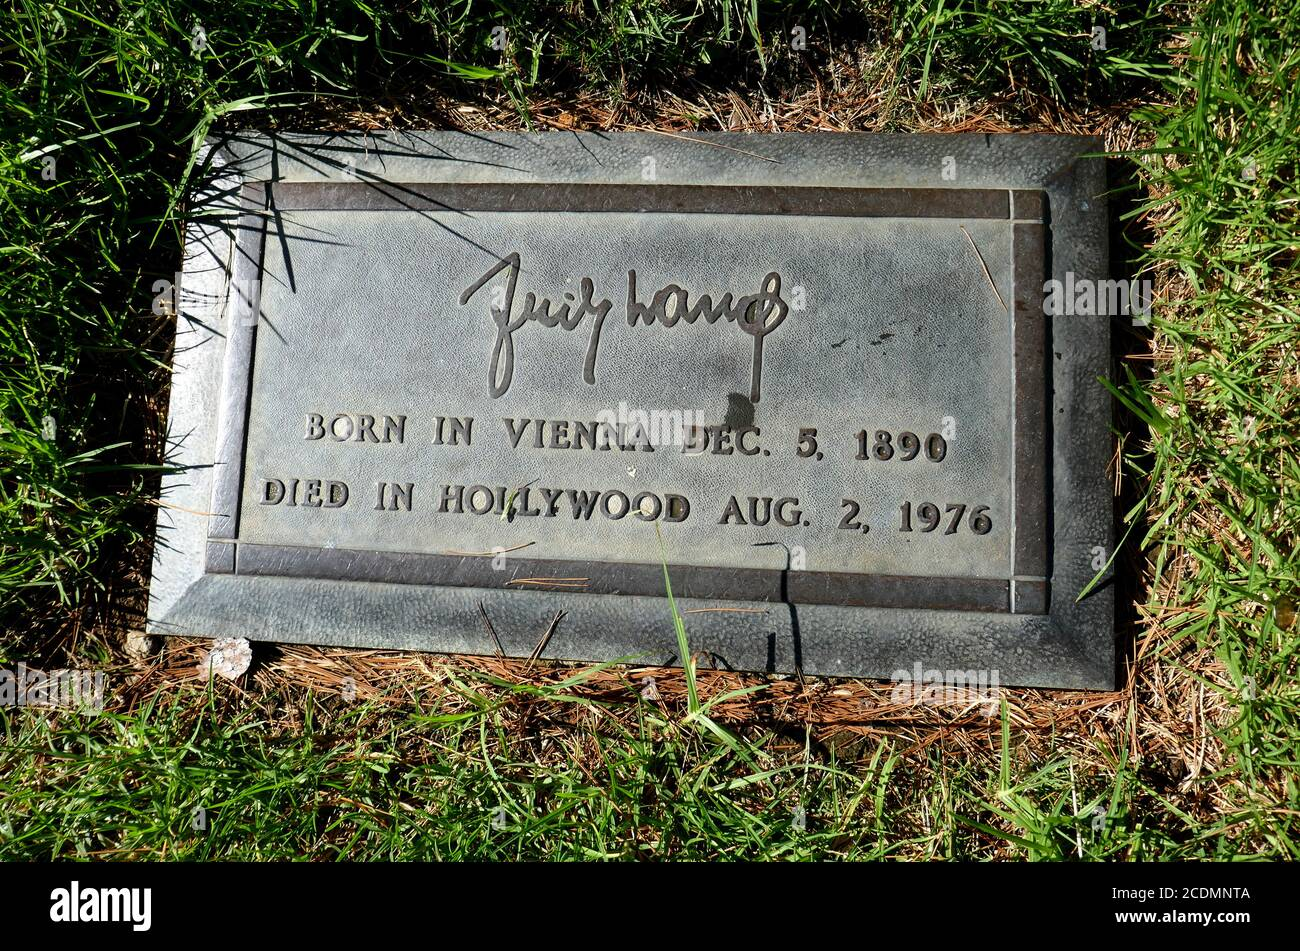 page 3 grave film director high resolution stock photography and images alamy alamy